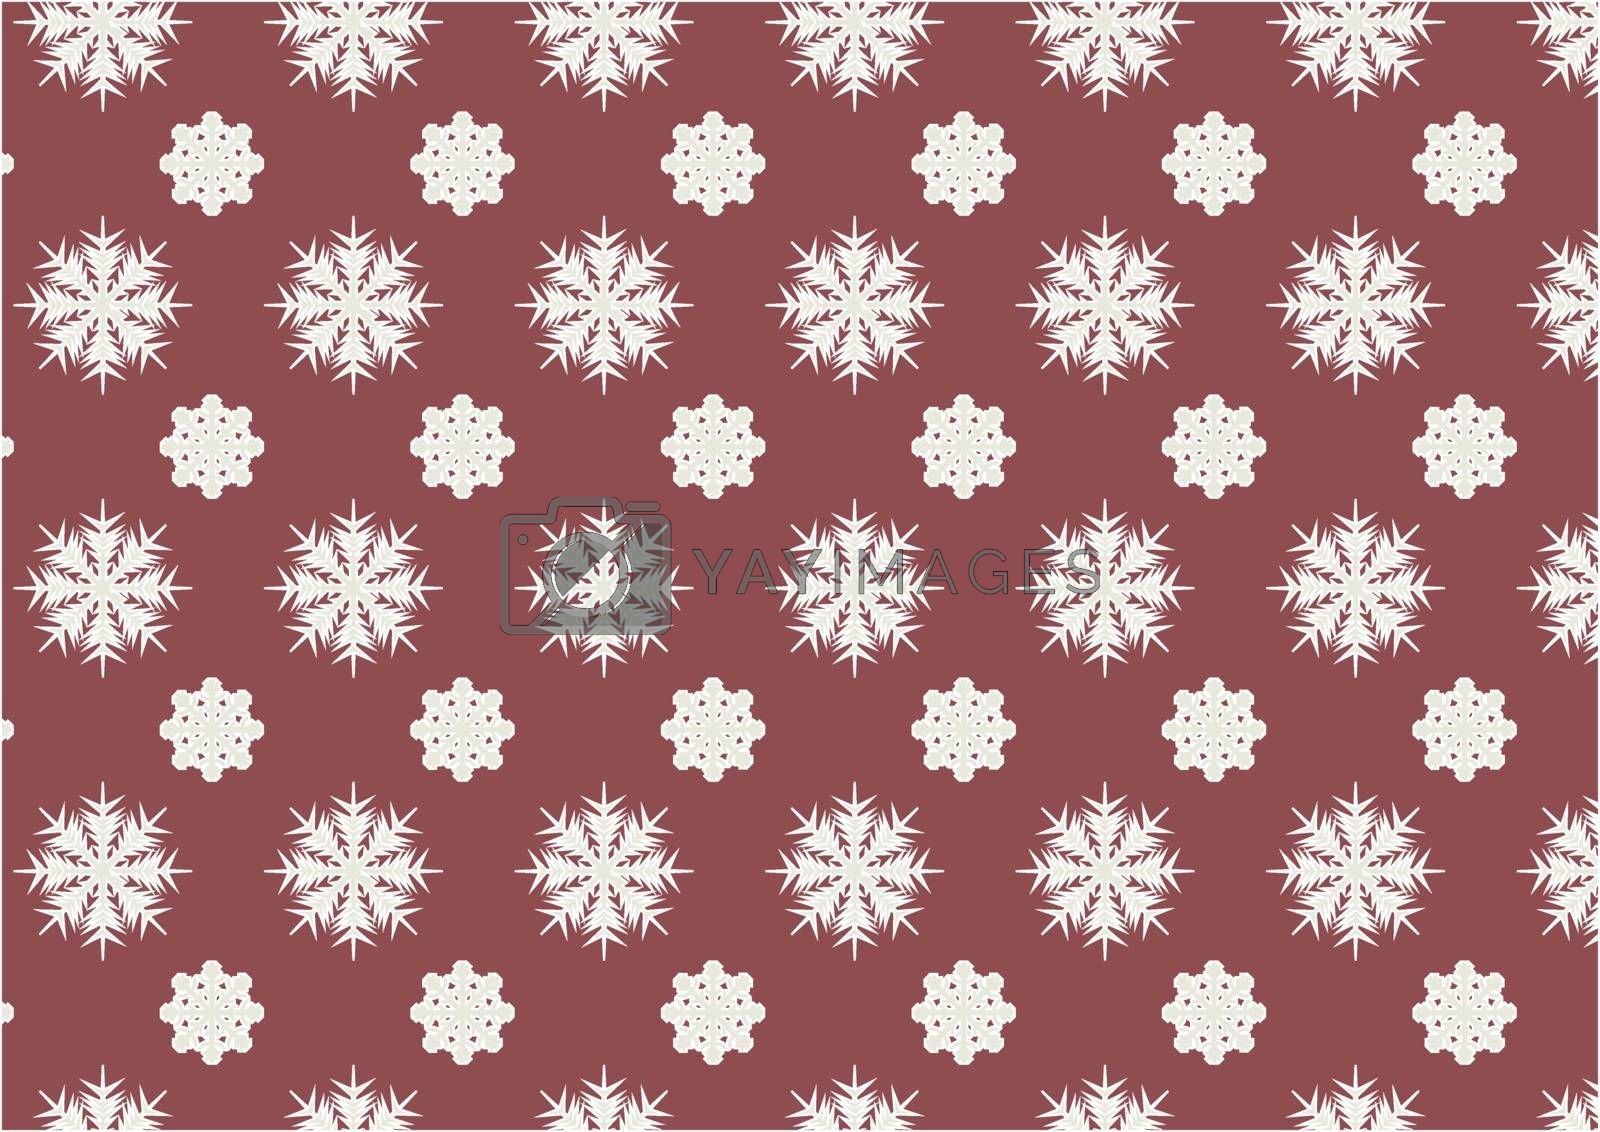 Seamless pattern of snowflakes on the marsala color background.